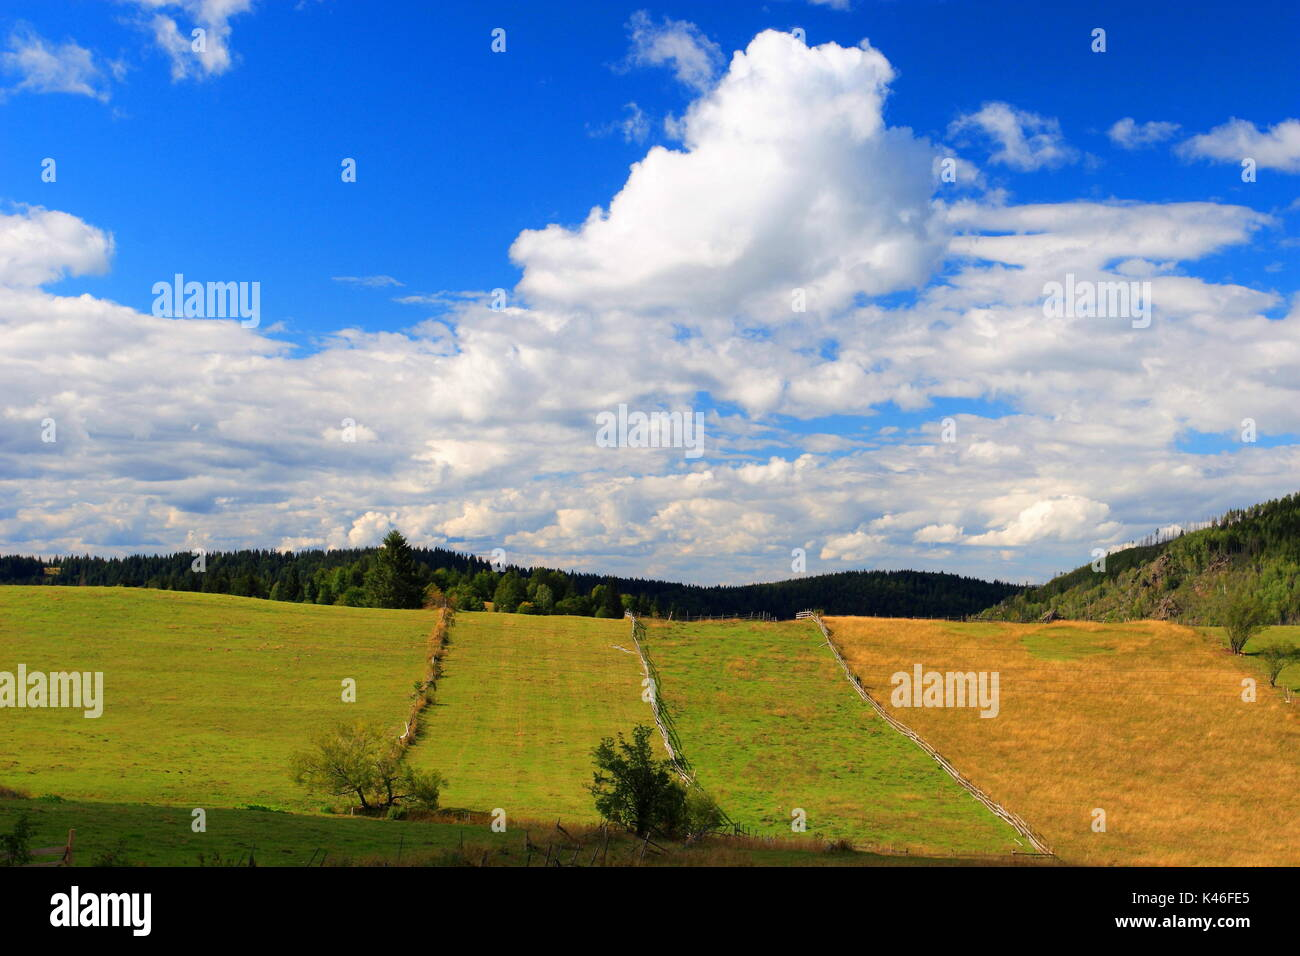 Subsistence agricultural landscape in the mountains of Montenegro - Stock Image